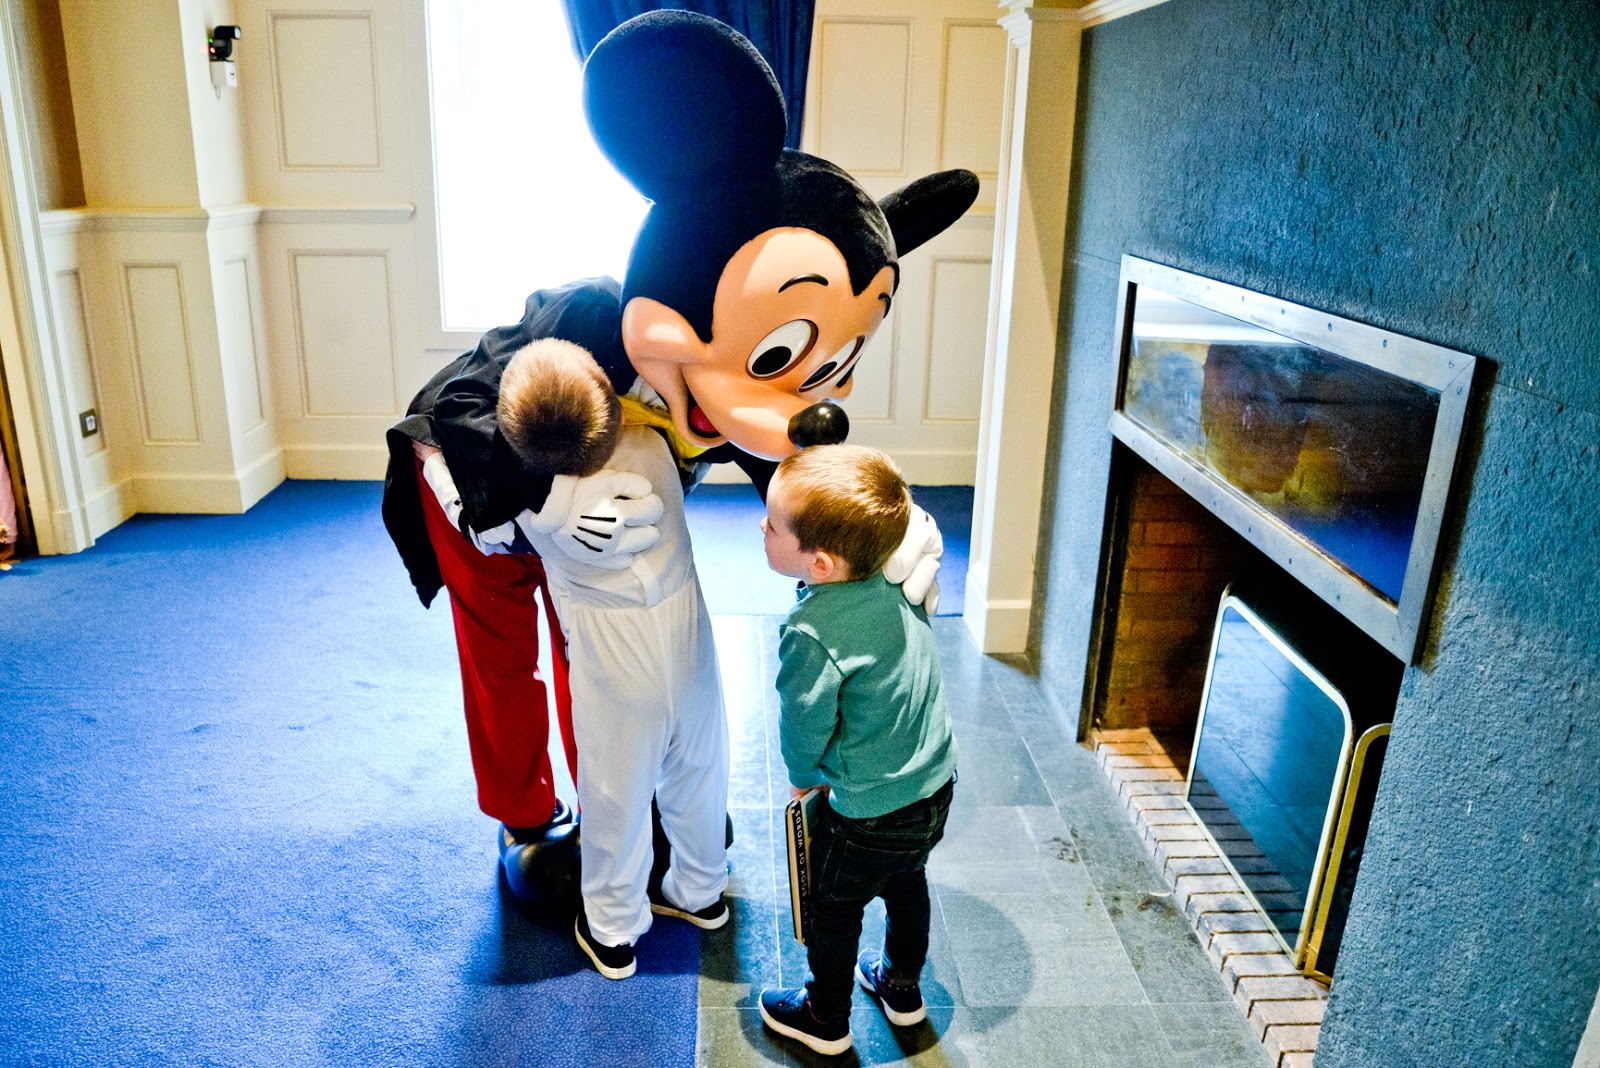 meeting mickey mouse disney, first time at disneyland paris, disneyland paris travel blog, disneyland, disneyland paris highlights, disneyland paris must do, vegetarians at disneyland paris,